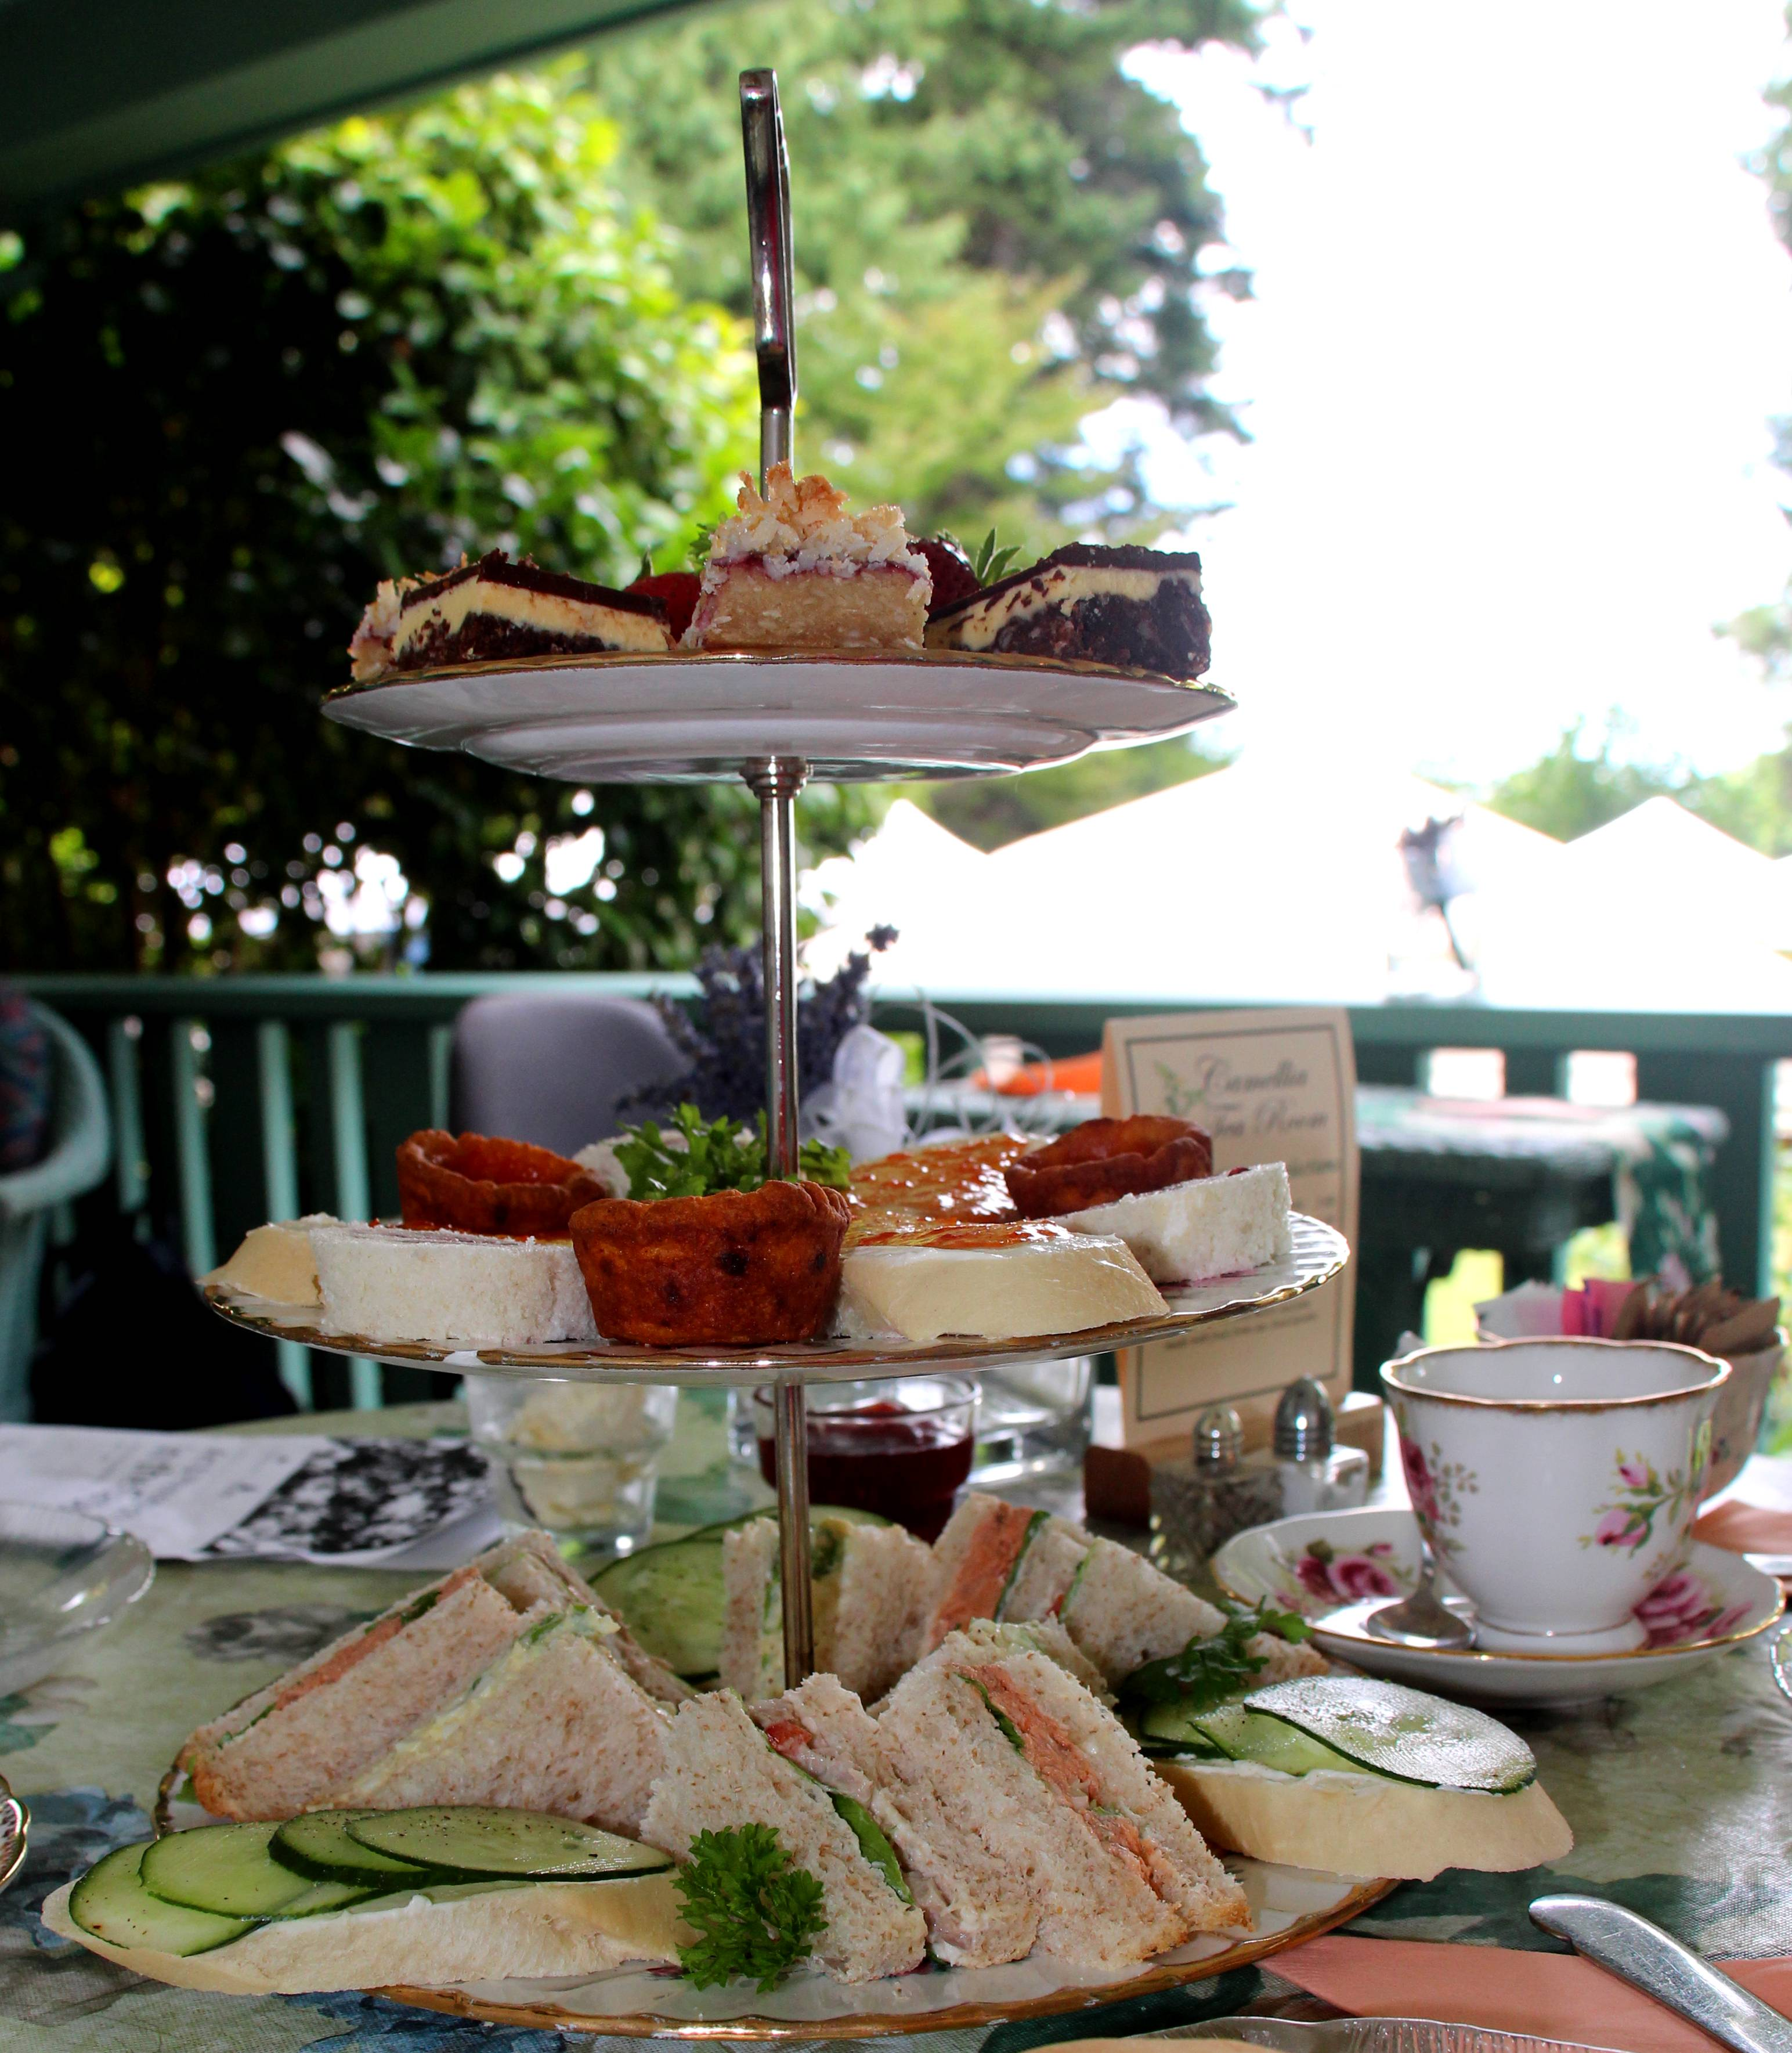 High tea at Milner Gardens and Woodland in Qualicum Beach on Vancouver Island